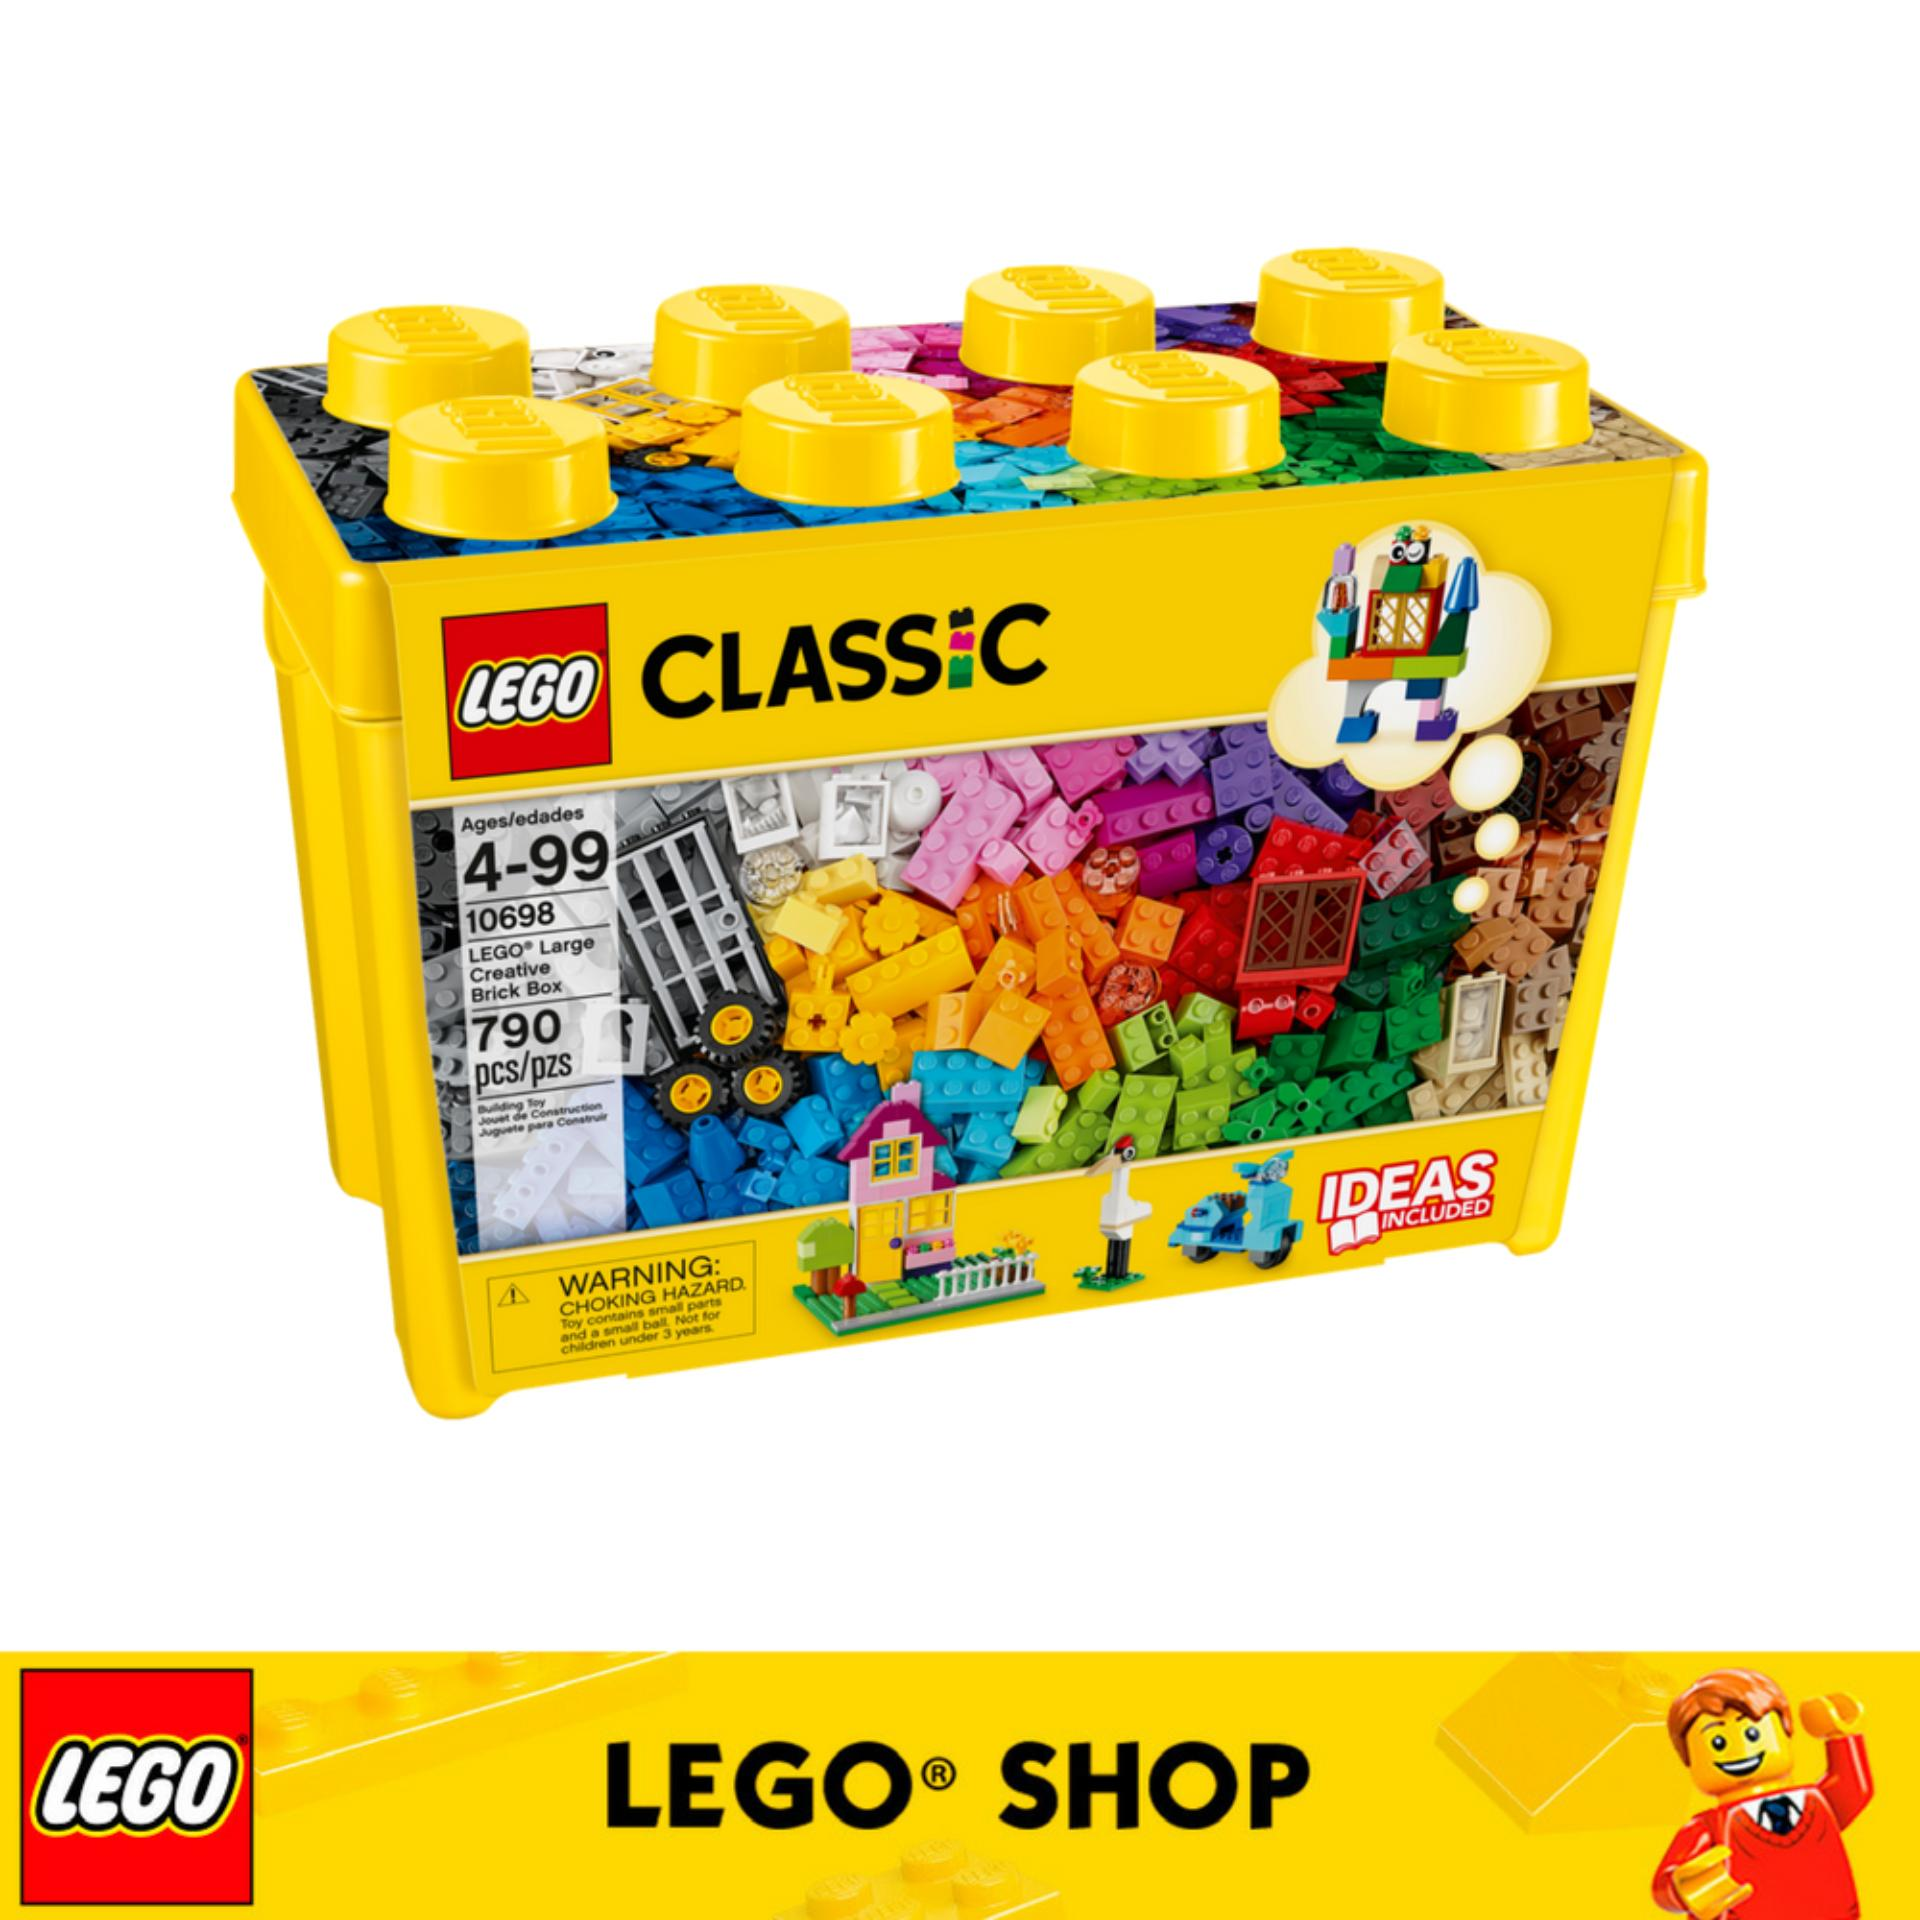 Get The Best Price For Lego® Lego Classic Lego® Large Creative Brick Box 10698